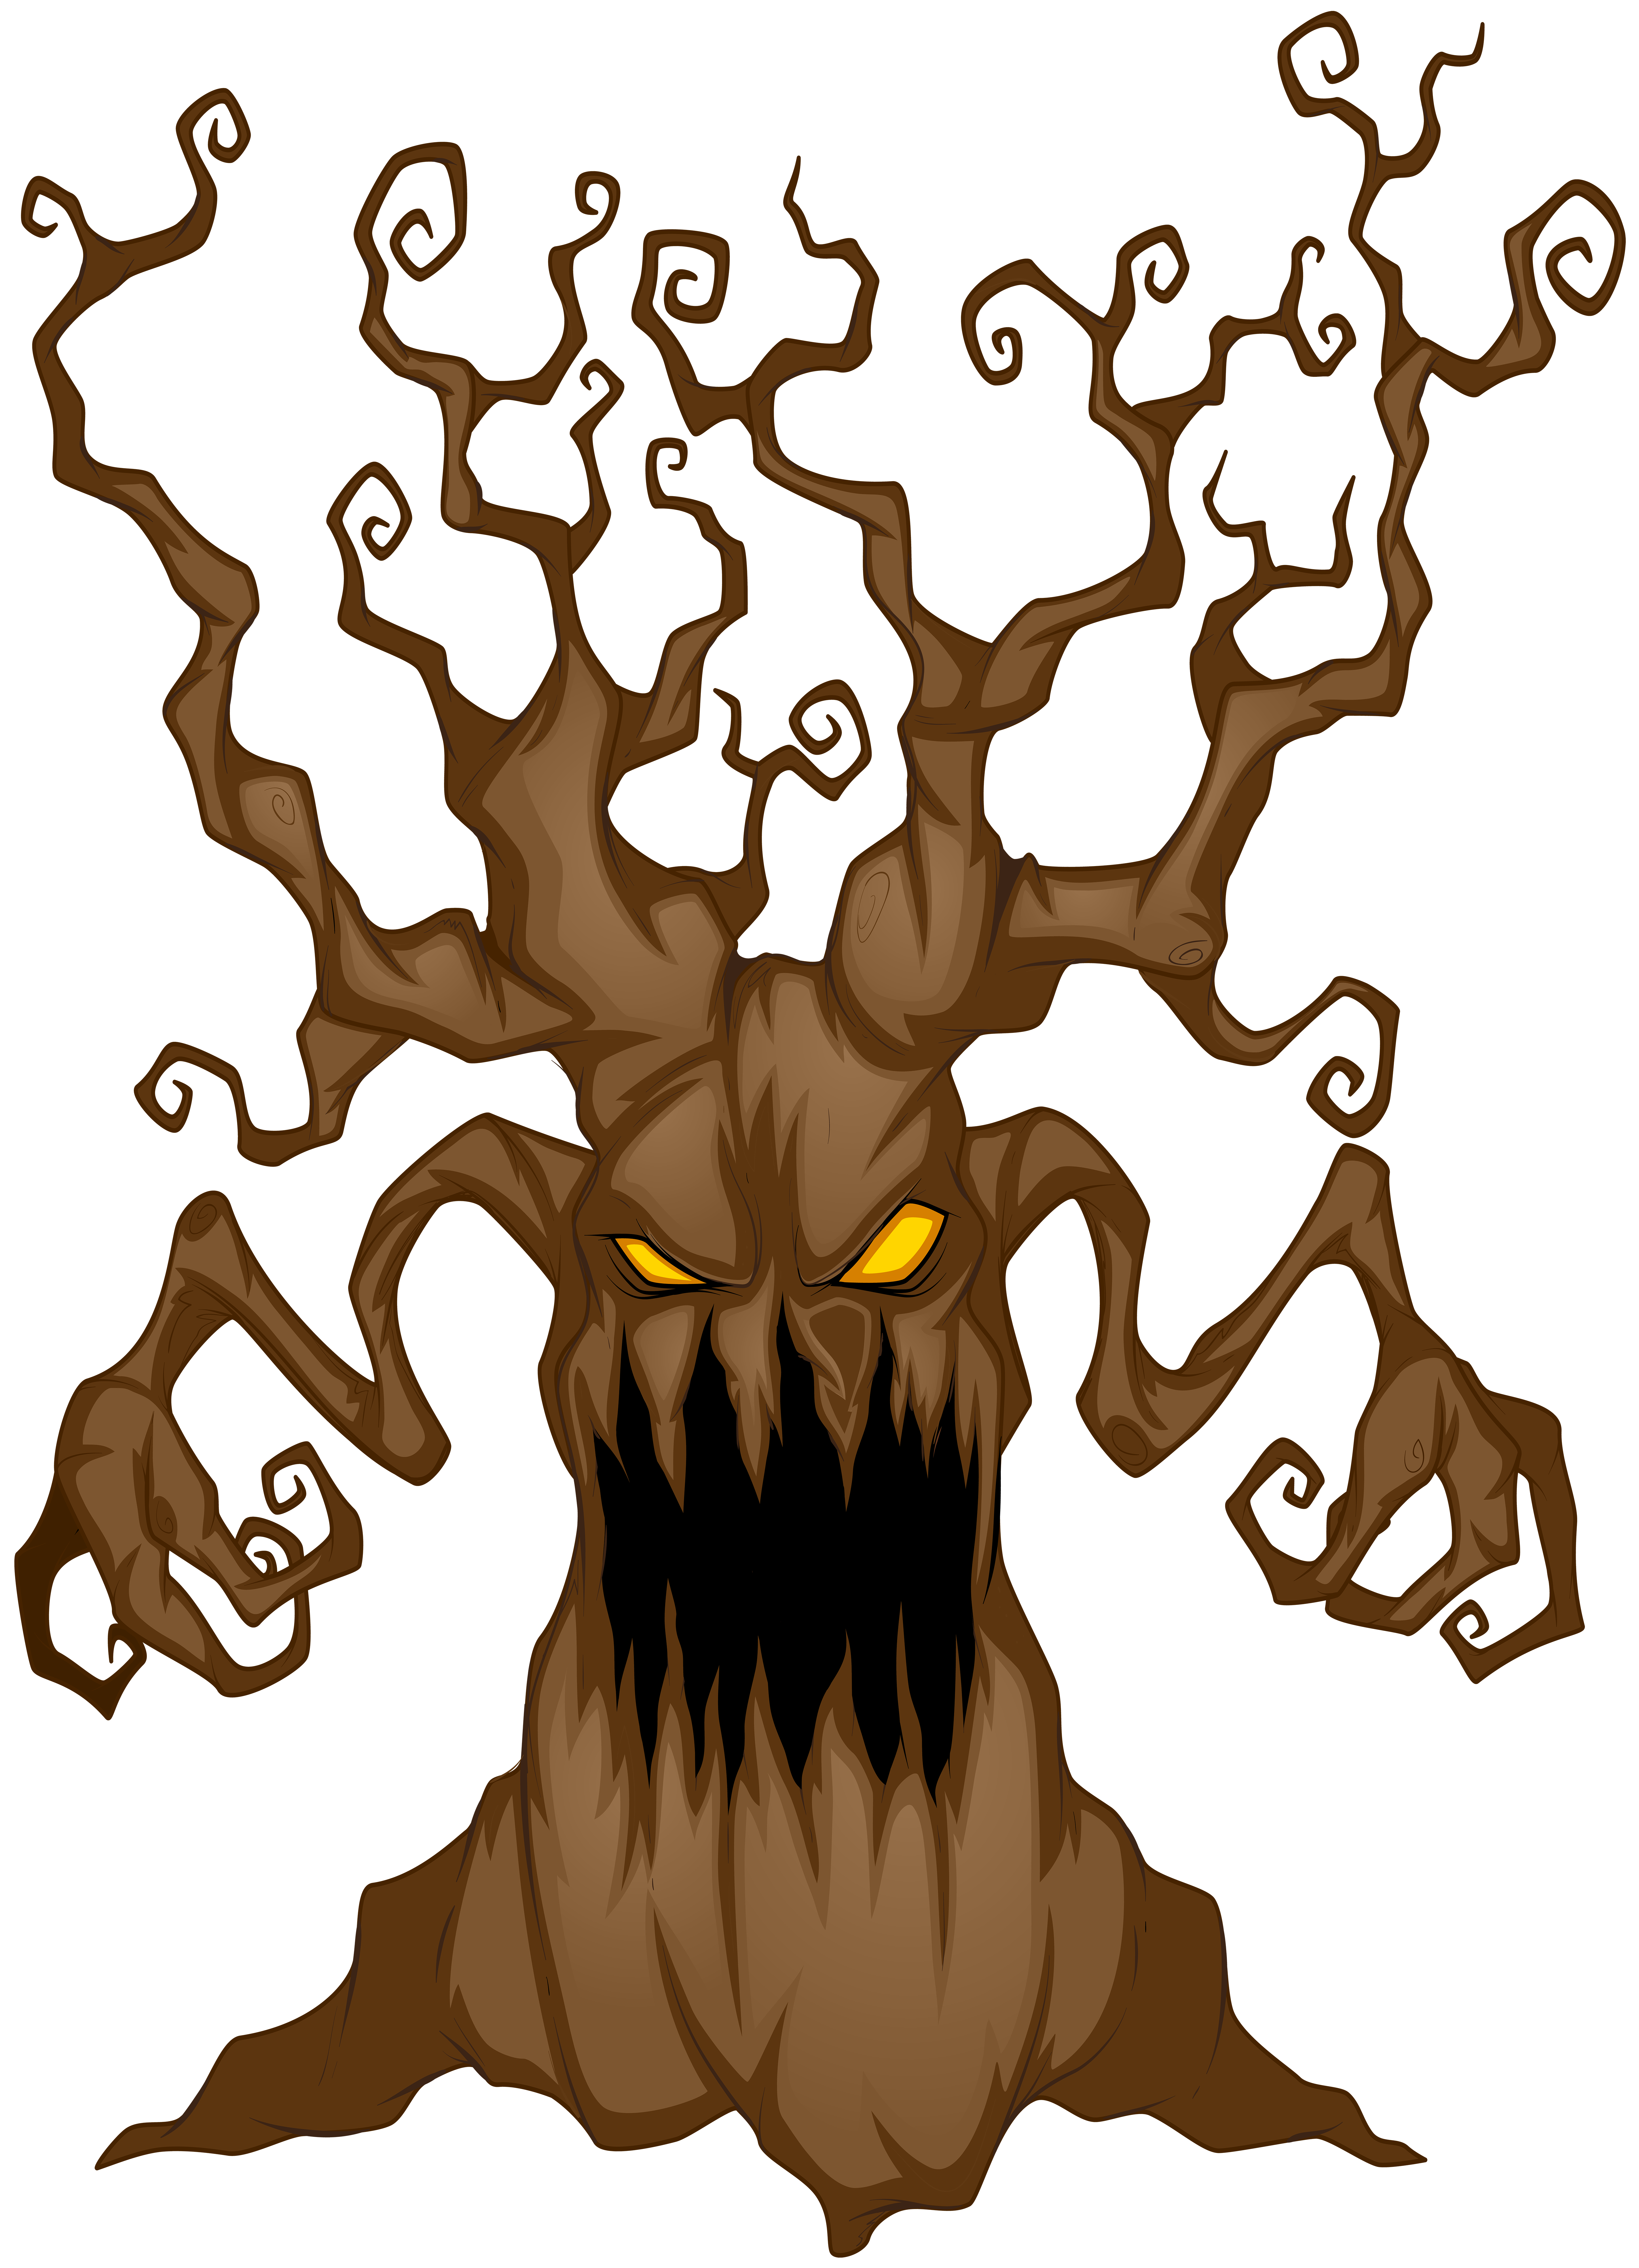 Scary tree clipart clipart transparent stock Halloween Tree Clipart at GetDrawings.com | Free for personal use ... clipart transparent stock